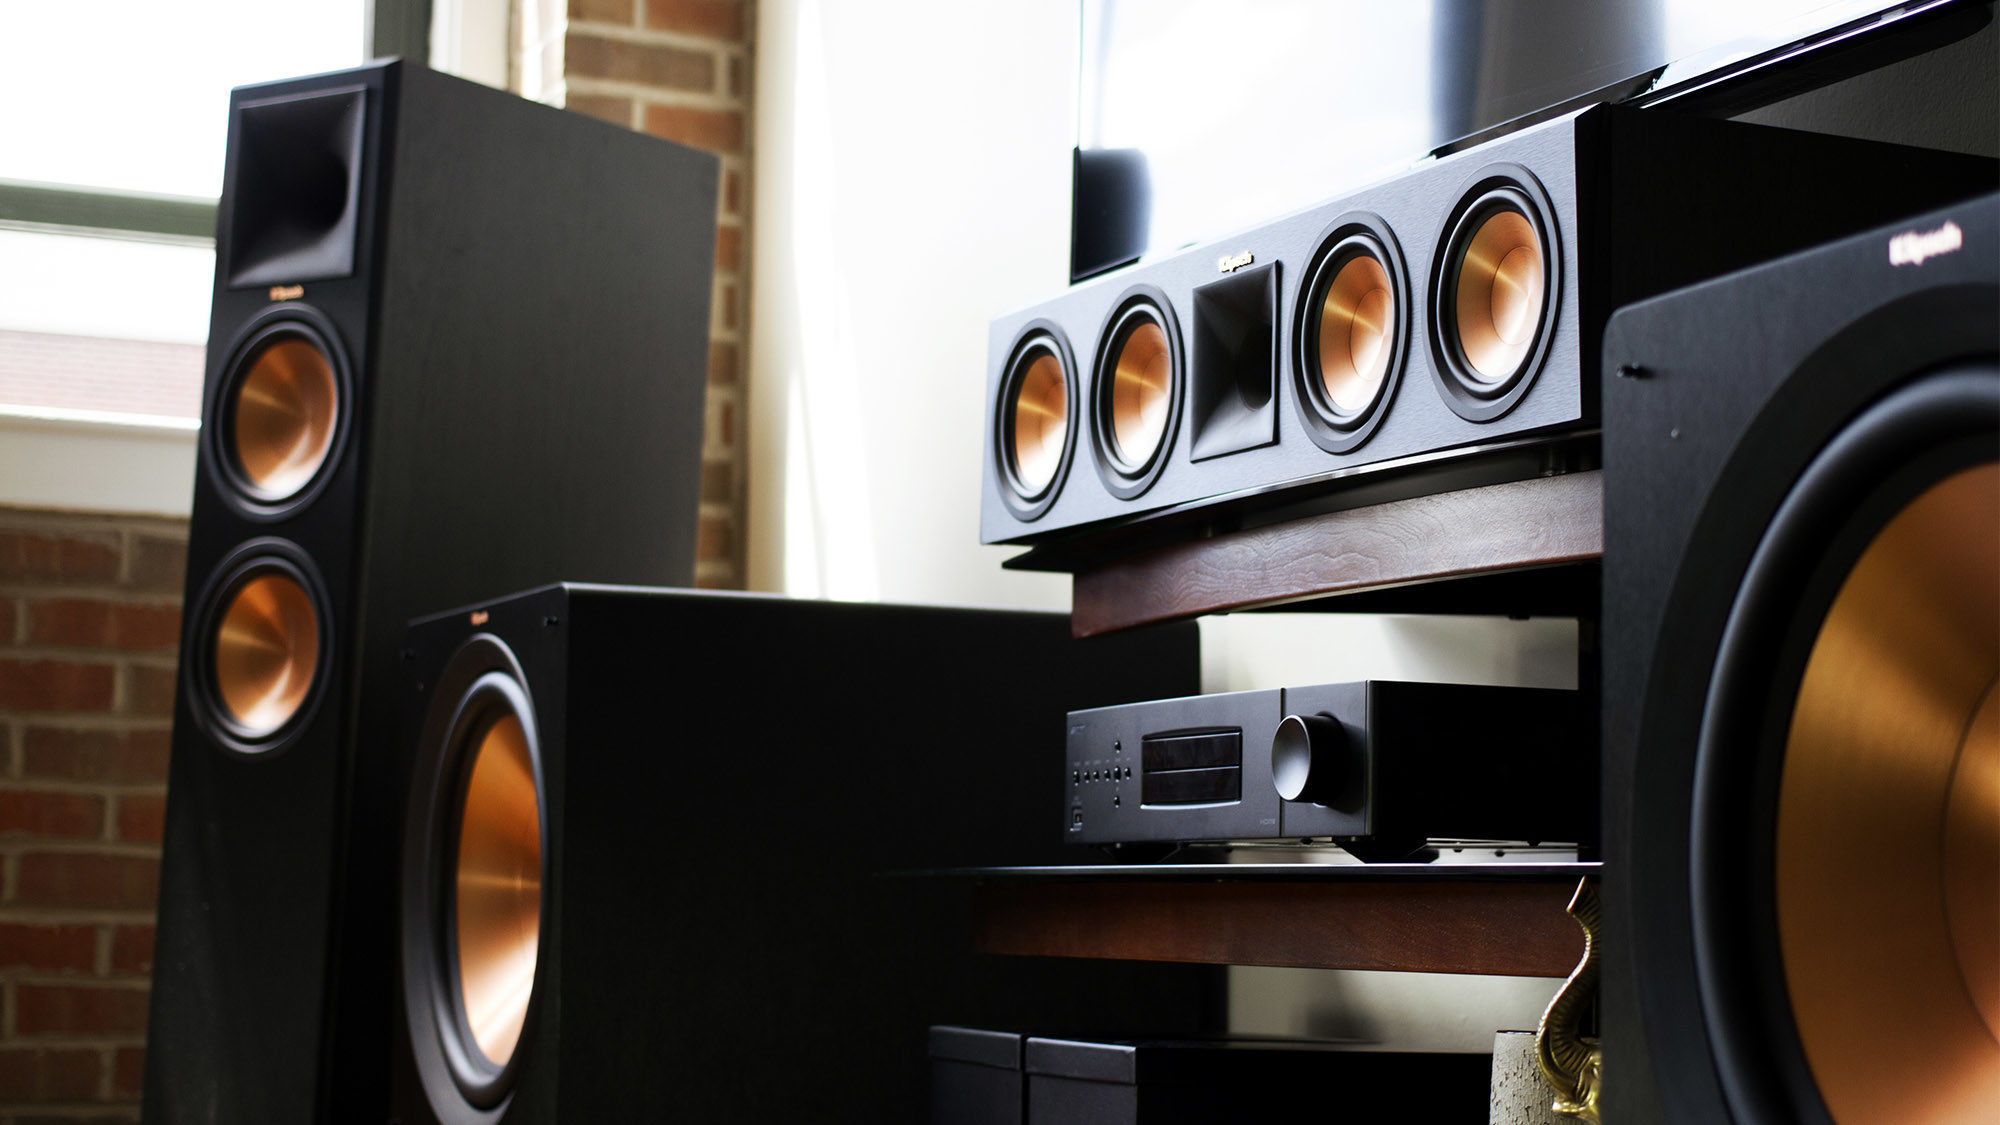 sound system with subwoofer. klipsch home theater systems sound system with subwoofer s